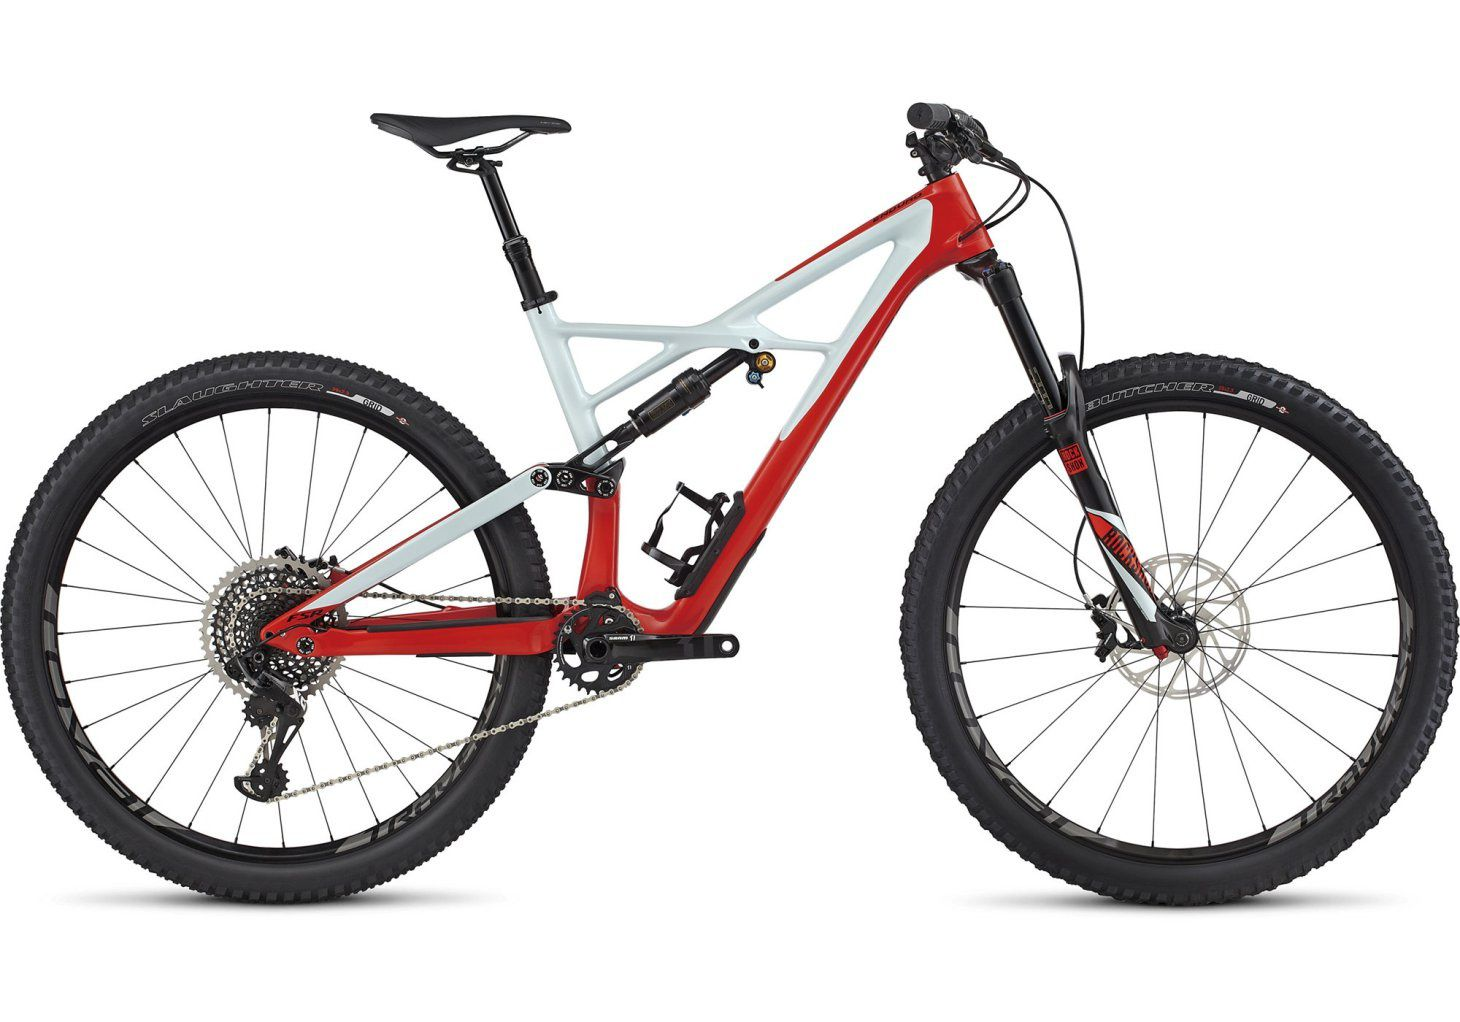 Specialized : Gamme Enduro 2017